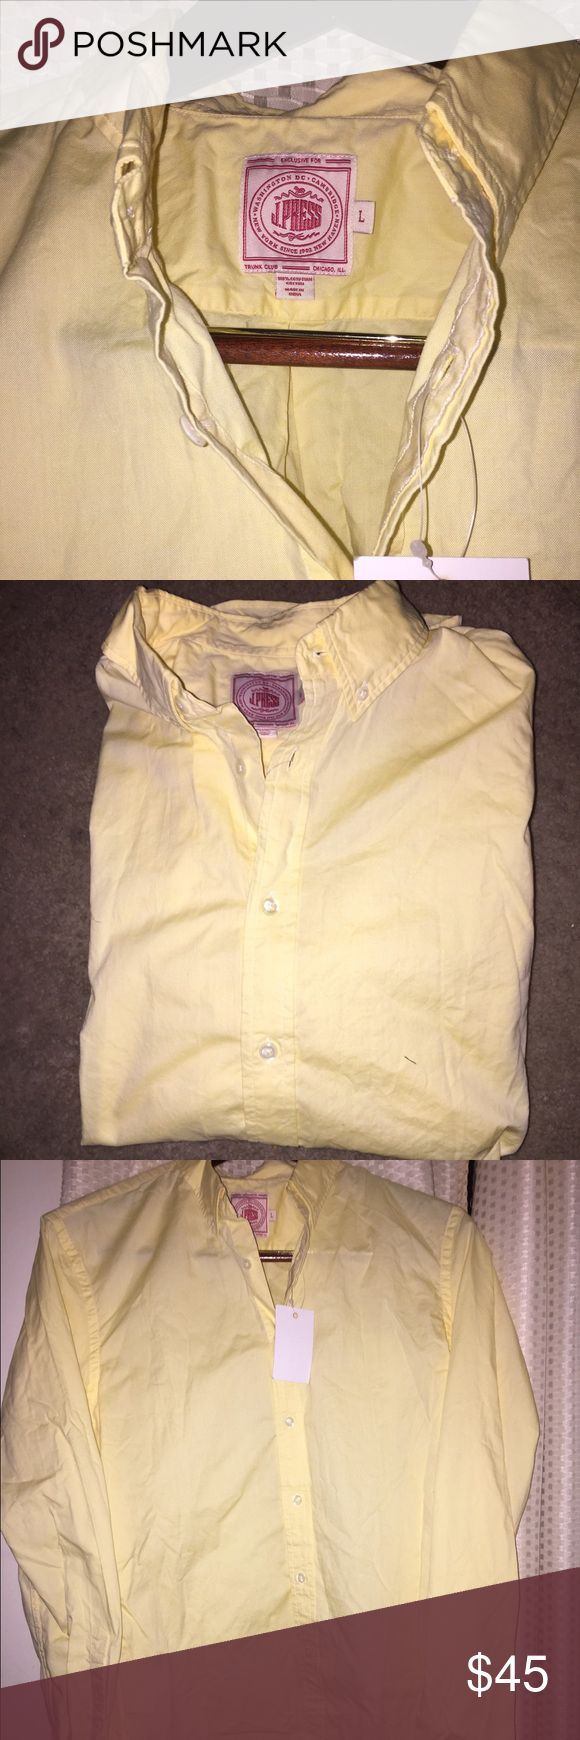 "J. Press ""Perfect Oxford Shirt"" Size L J. Press ""Perfect Oxford Shirt"" in a pale yellow with button down collar - Size L.   Brand new with tags. Retail price: $88 (regularly more; price reduced for Trunk Club collaboration).   ""Jacobi Press first founded J. Press on Yale University's campus in 1902. In its own words, the brand has outfitted ""U.S. Presidents, statesmen, scholars, and captains of industry."" All the while, the company has ignored trends, devoting itself to quality, classic…"